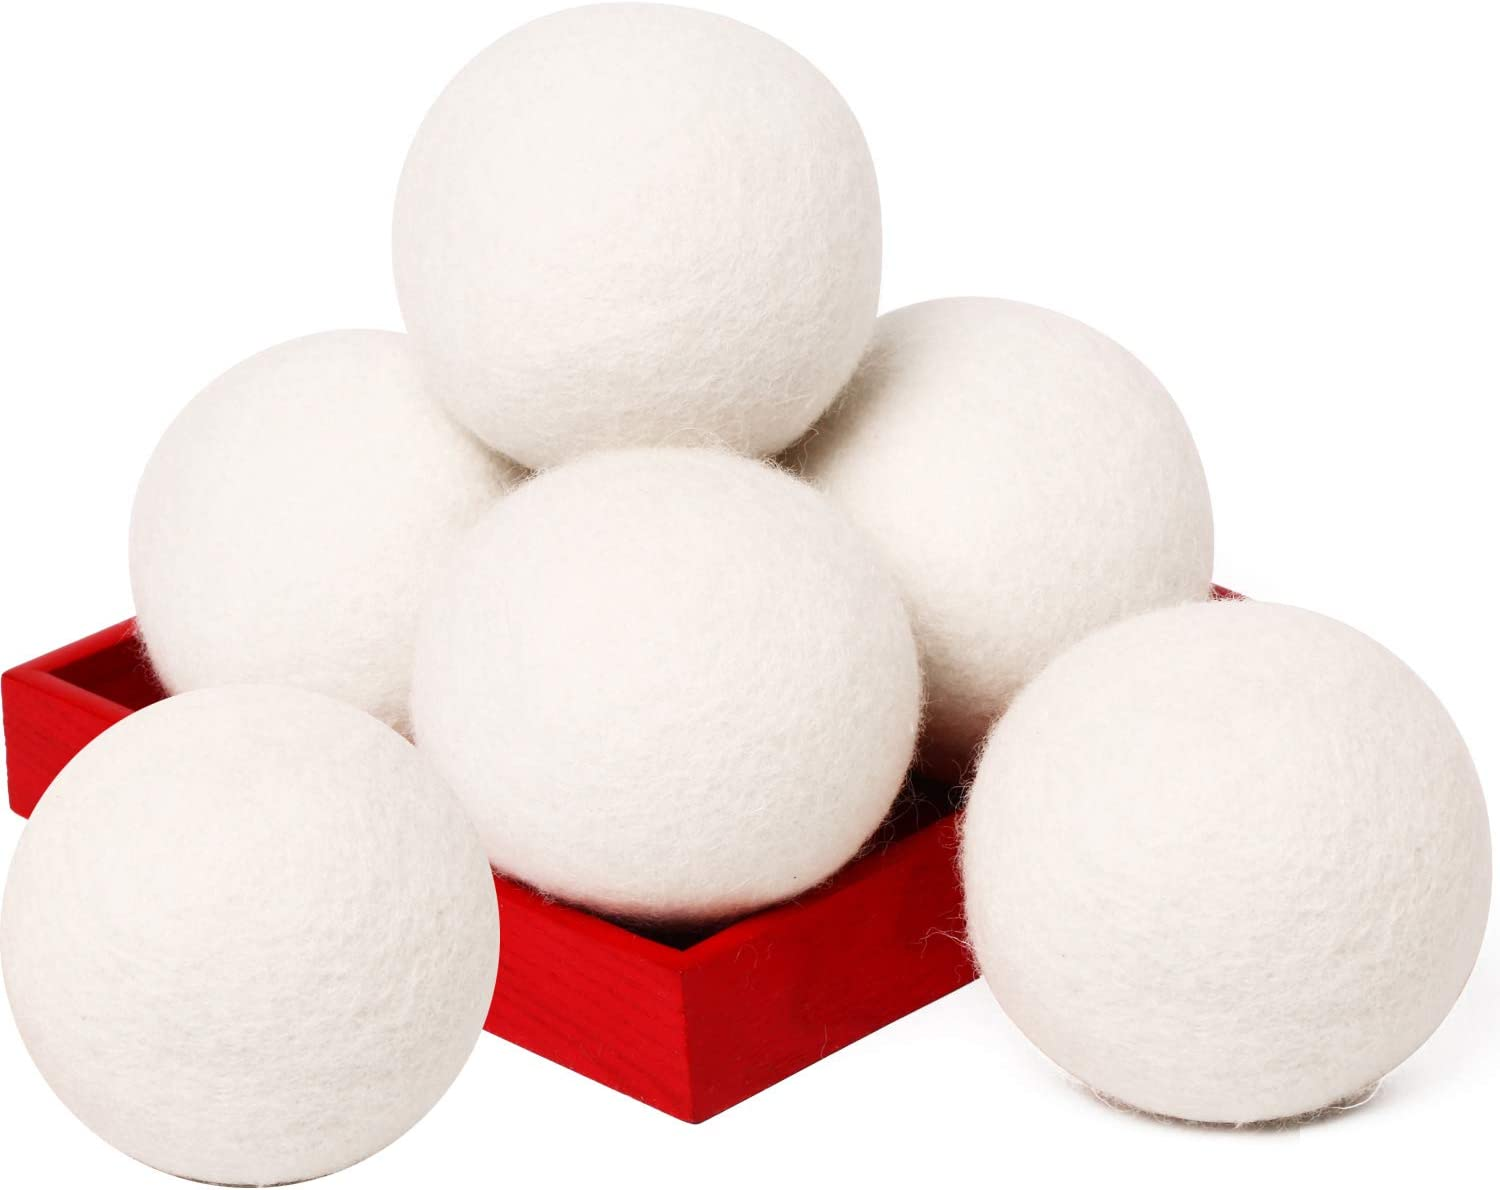 Wool Dryer Balls Organic XL 6-Pack Natural Fabric Softener Laundry Dryer Ball 100% New Zealand Fabric Softener for 1000+ Loads Baby Safe & Hypoallergenic (White, 6XL)